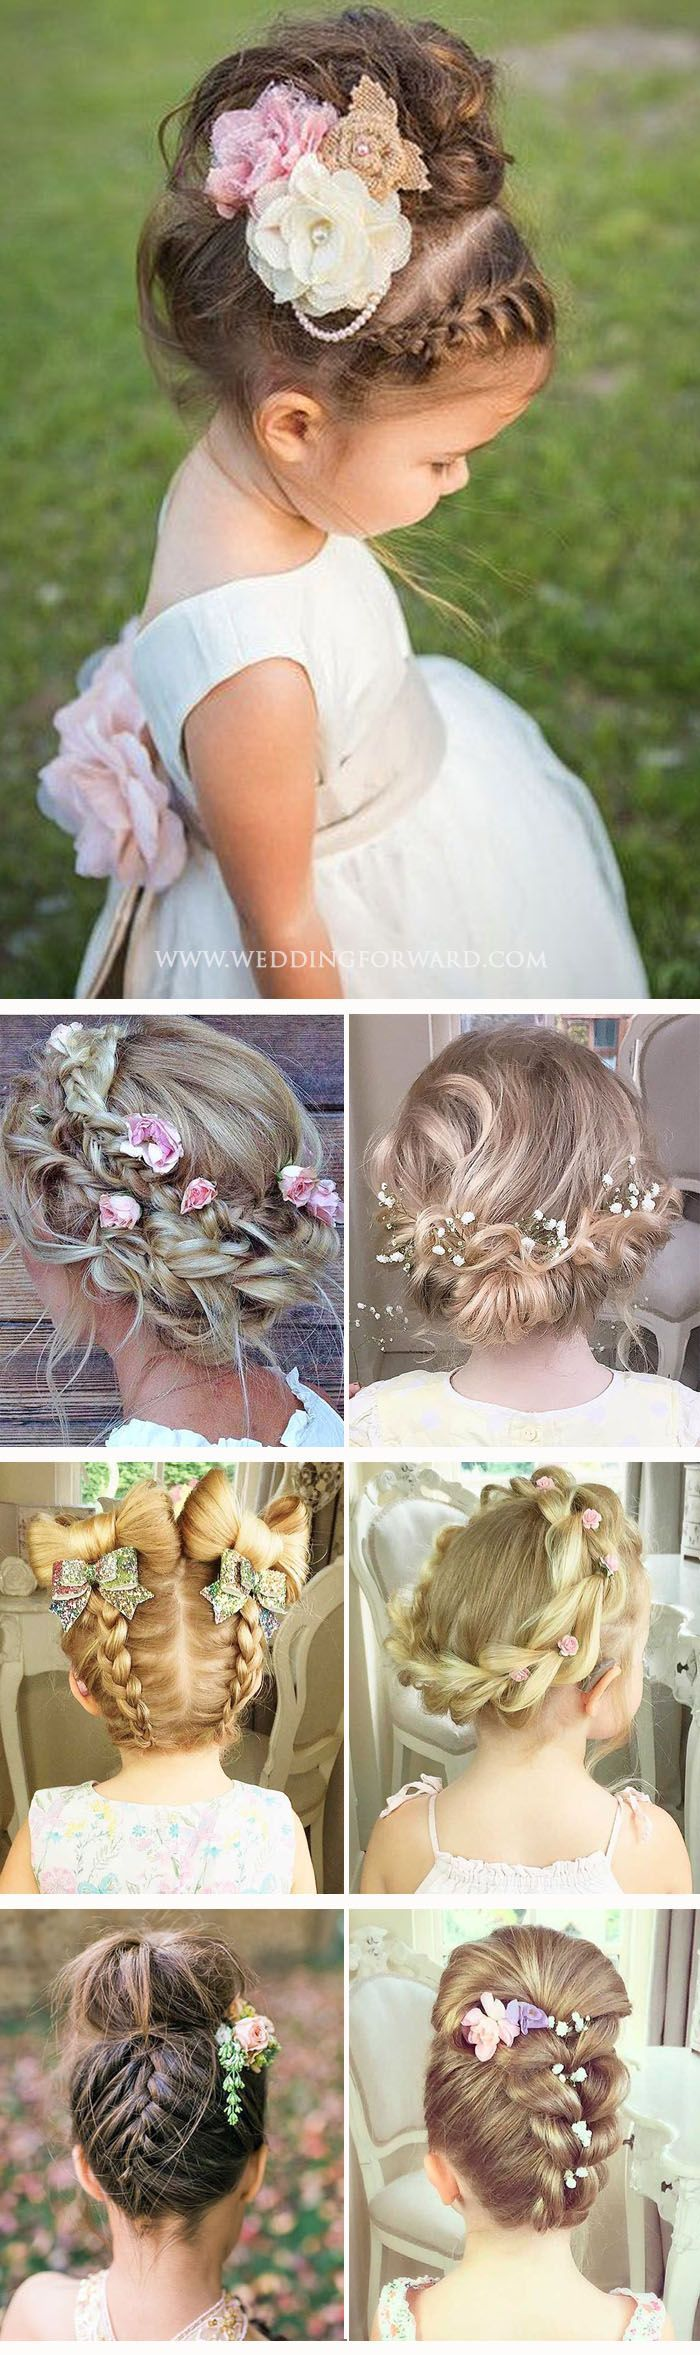 awesome 30 Cute Flower Girl Hairstyles ❤ Here you find some simple flower girl hairsty...